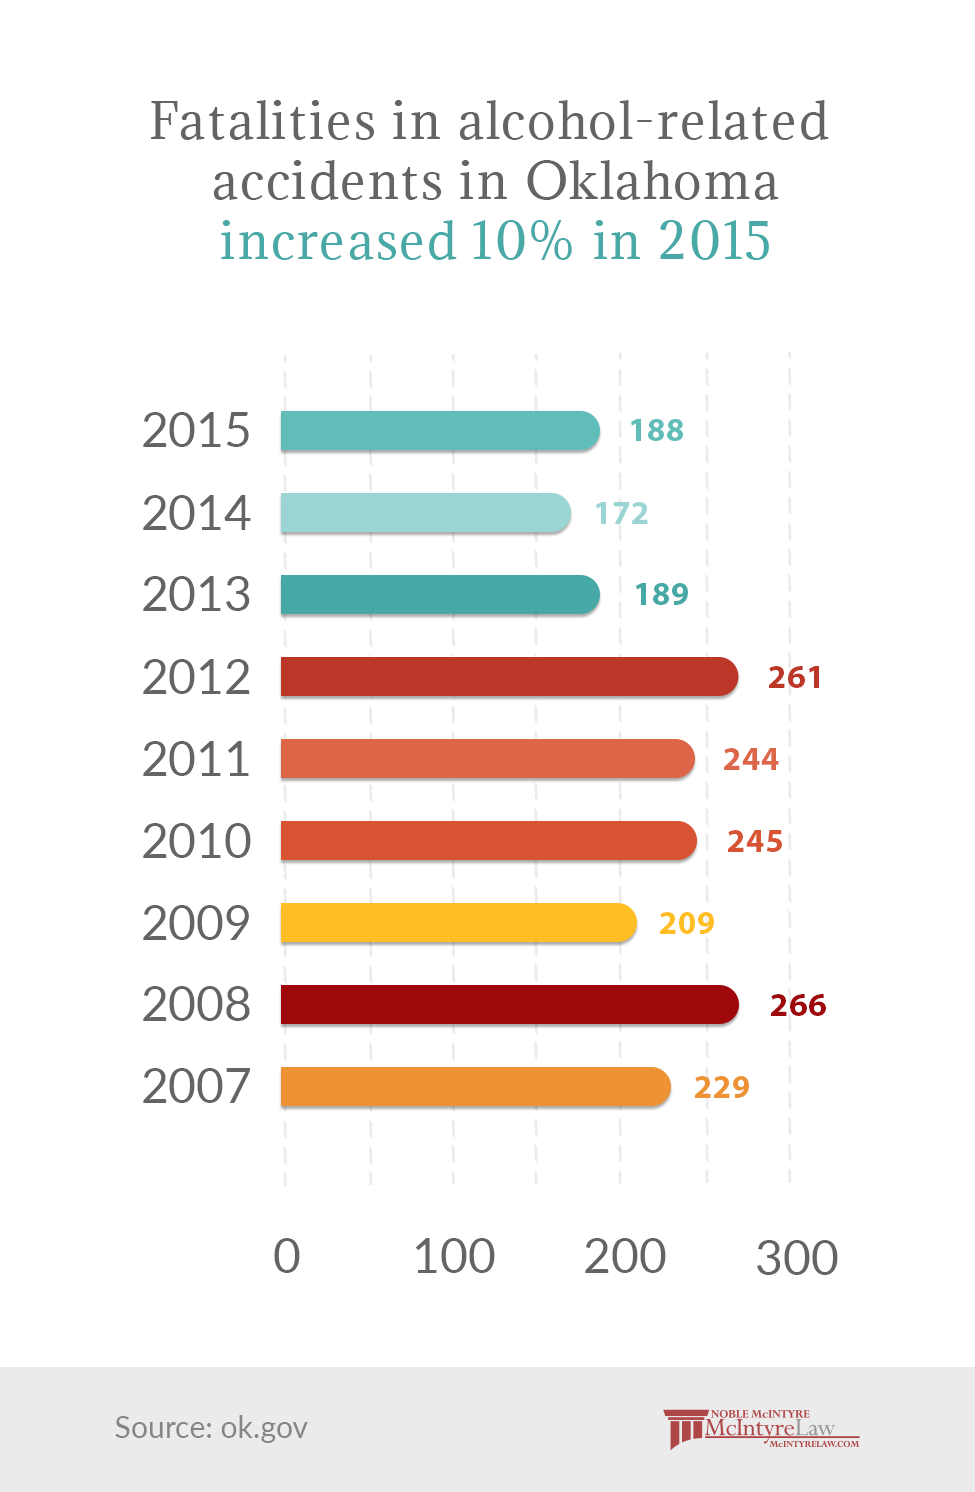 Fatalities in alcohol-related accidents in Oklahoma from 2007-2015